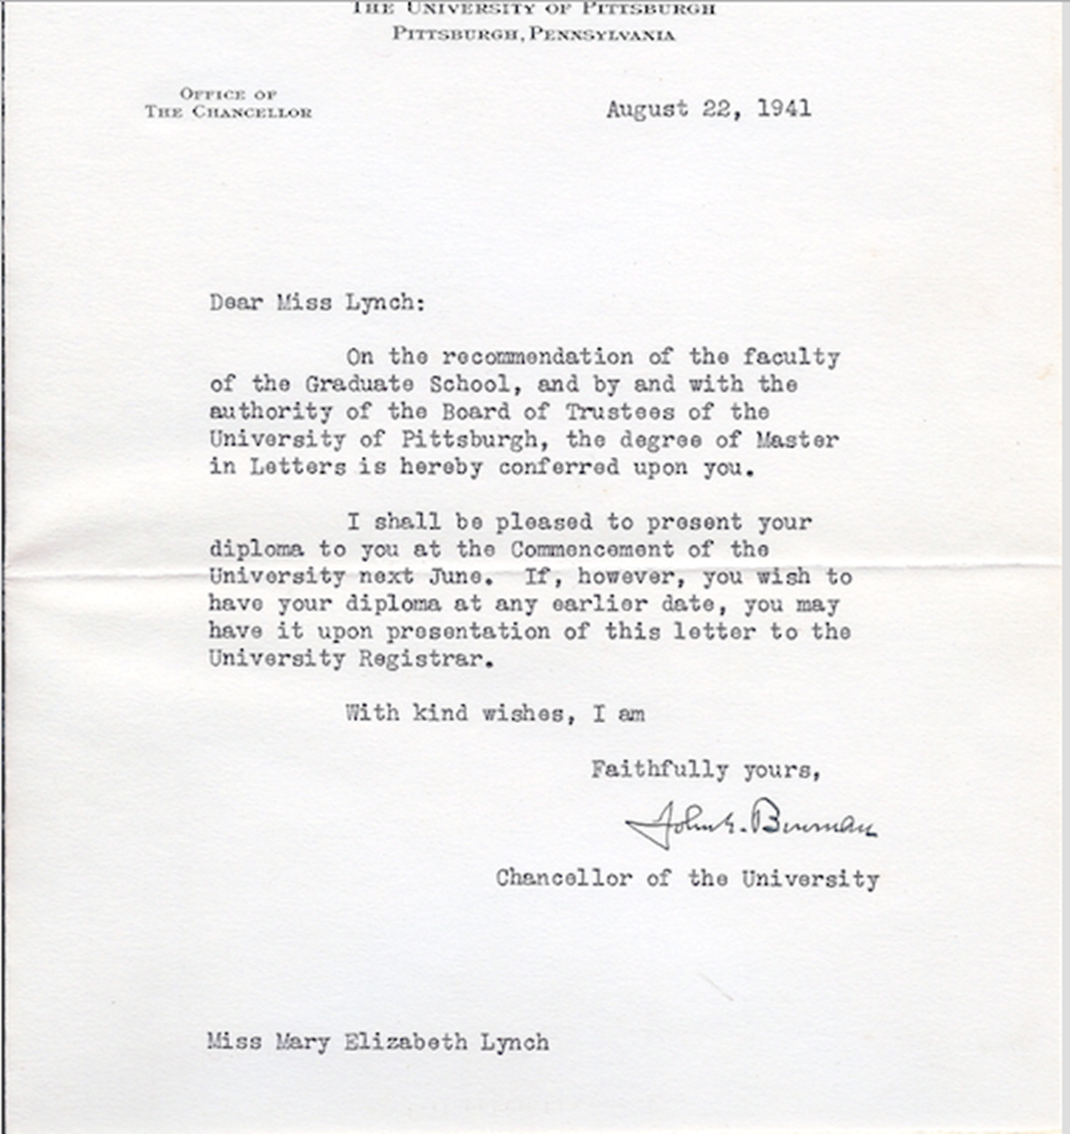 betty lynchs letter from the chancellor of the university of pittsburgh